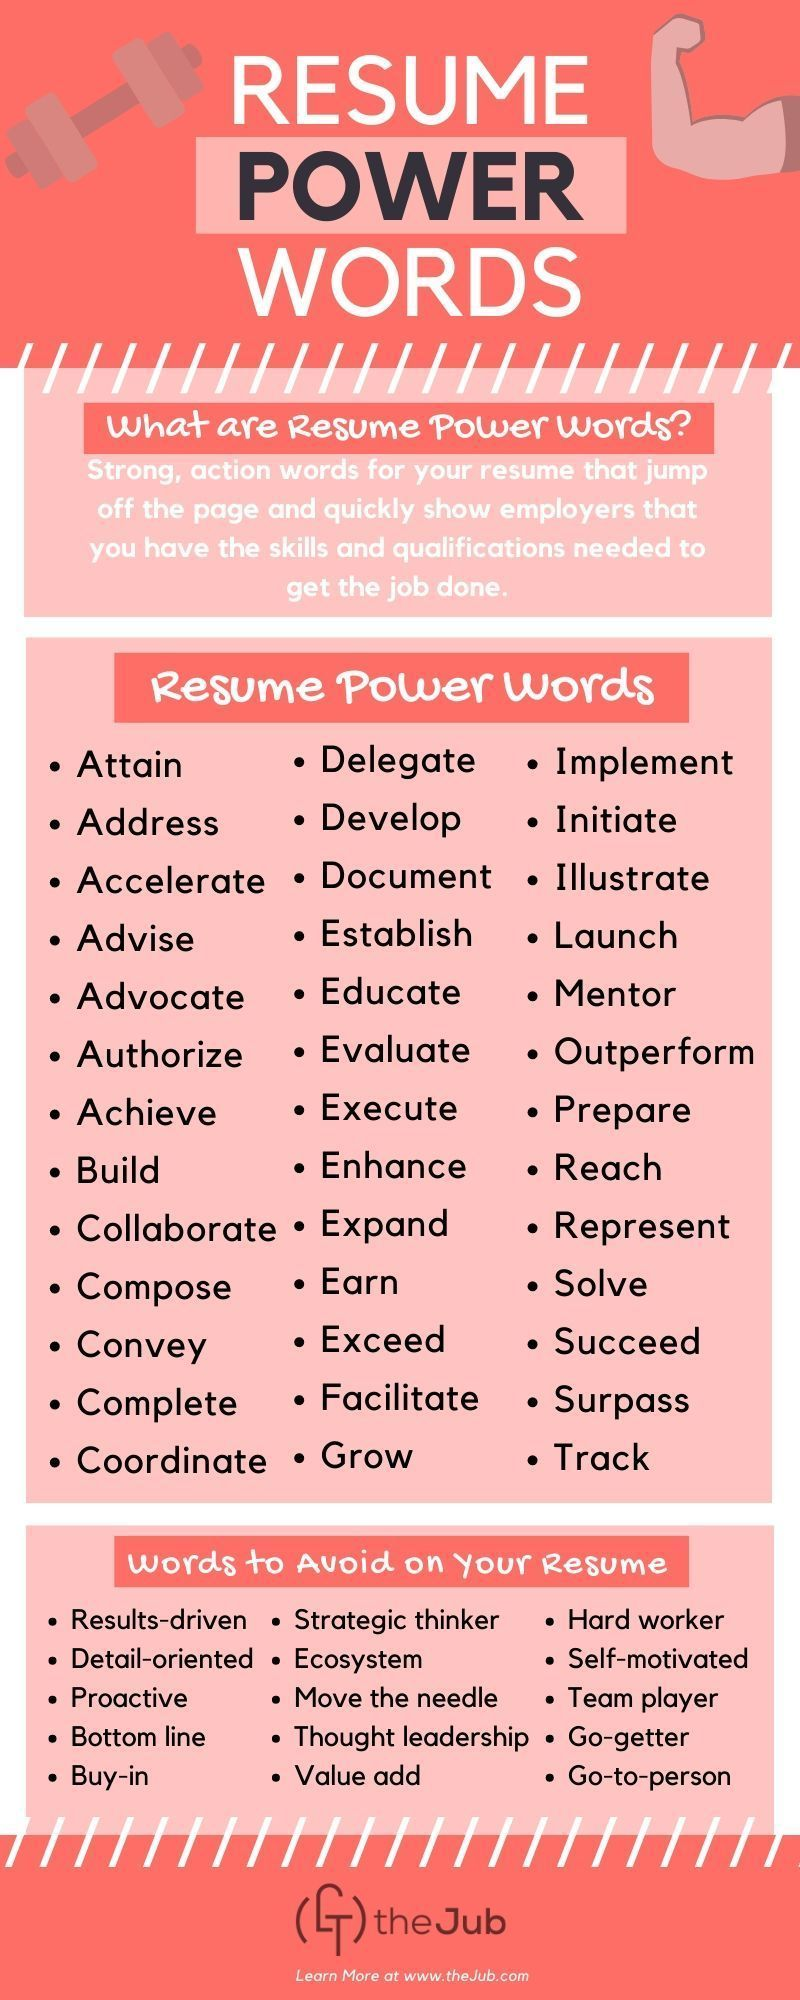 Resume Power Words for 2021 (Infographic)